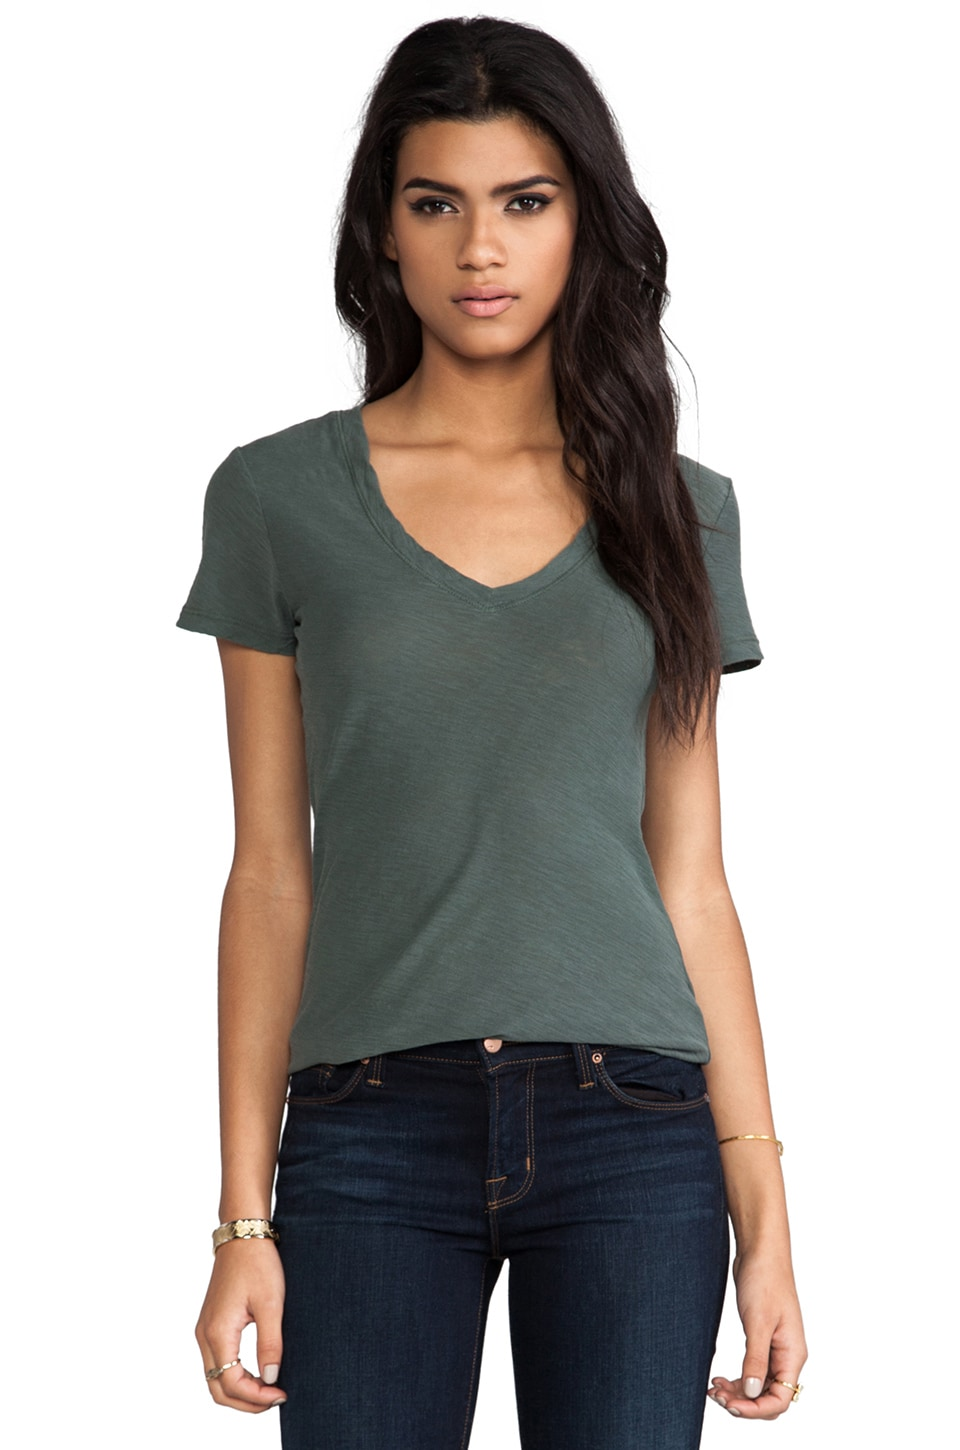 James Perse Casual Tee w/ Reverse Binding in Forest Green